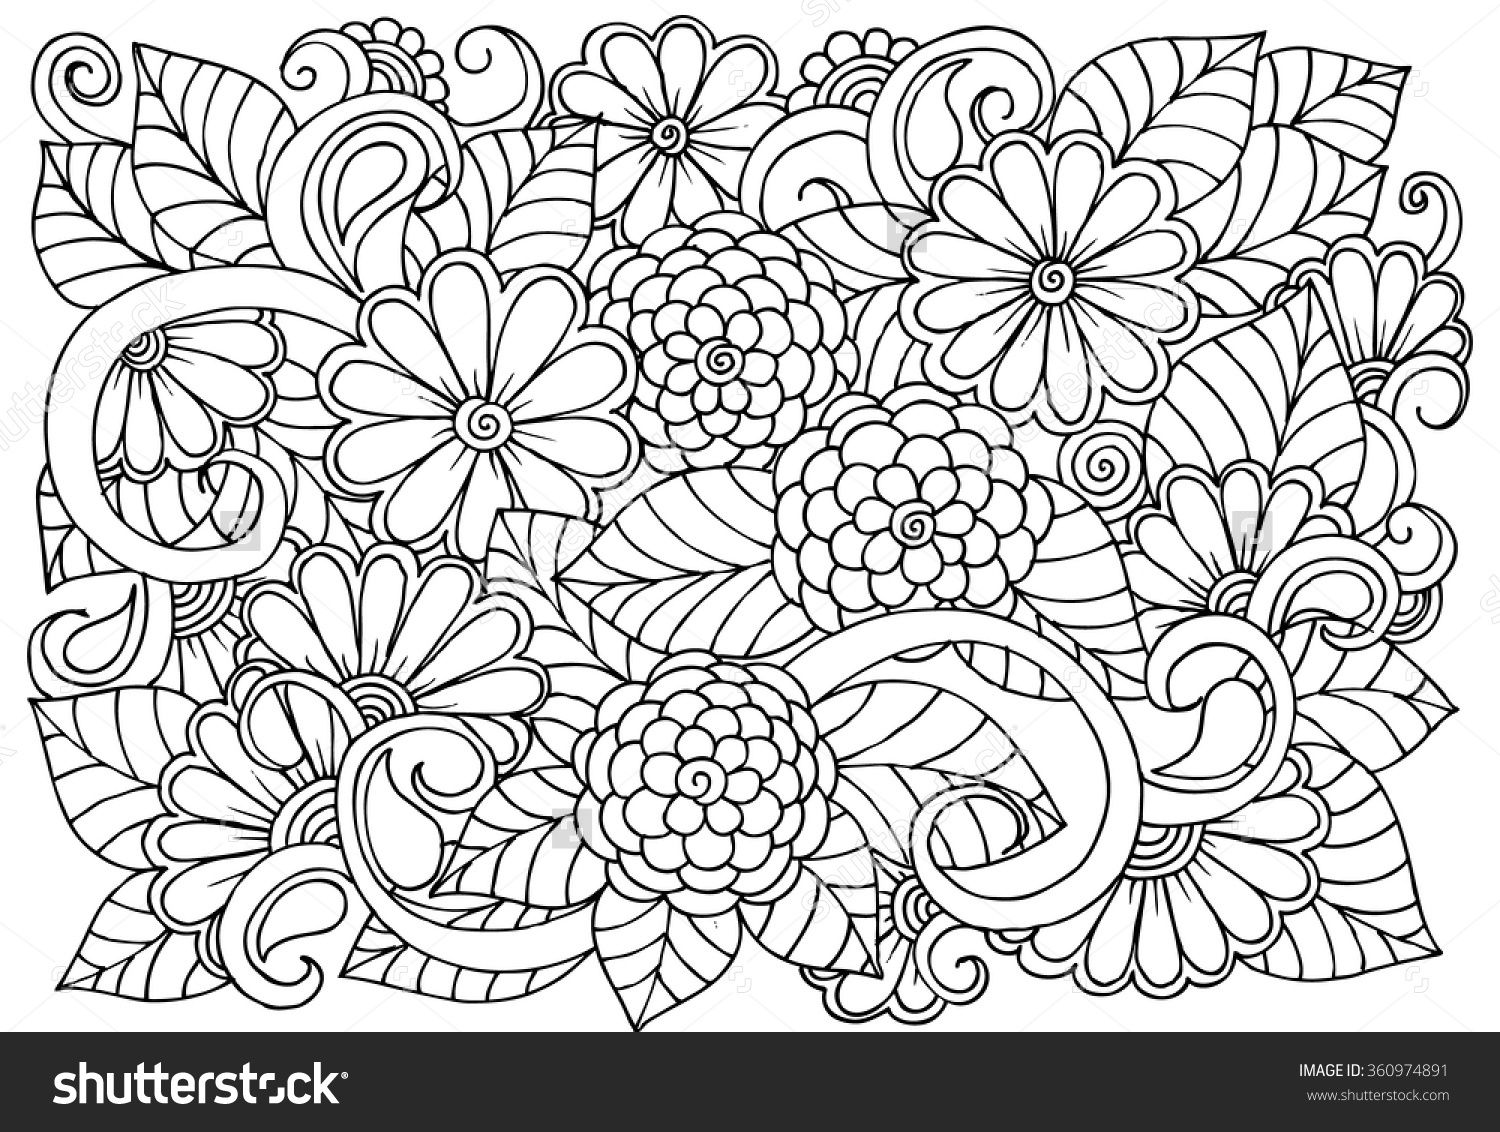 Zen doodle colour - Doodle Floral Pattern In Black And White Page For Coloring Book Zendoodle Drawing